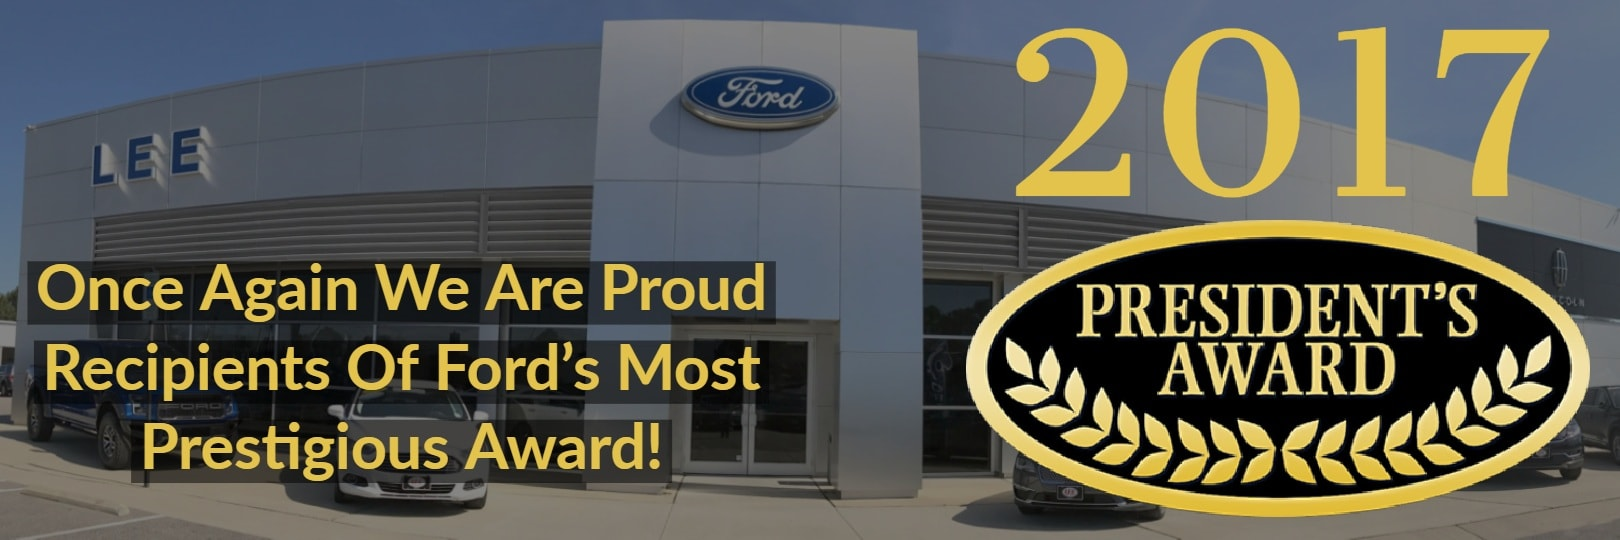 Lee Ford Lincoln Ford Dealership In Wilson NC - Ford dealership wilson nc